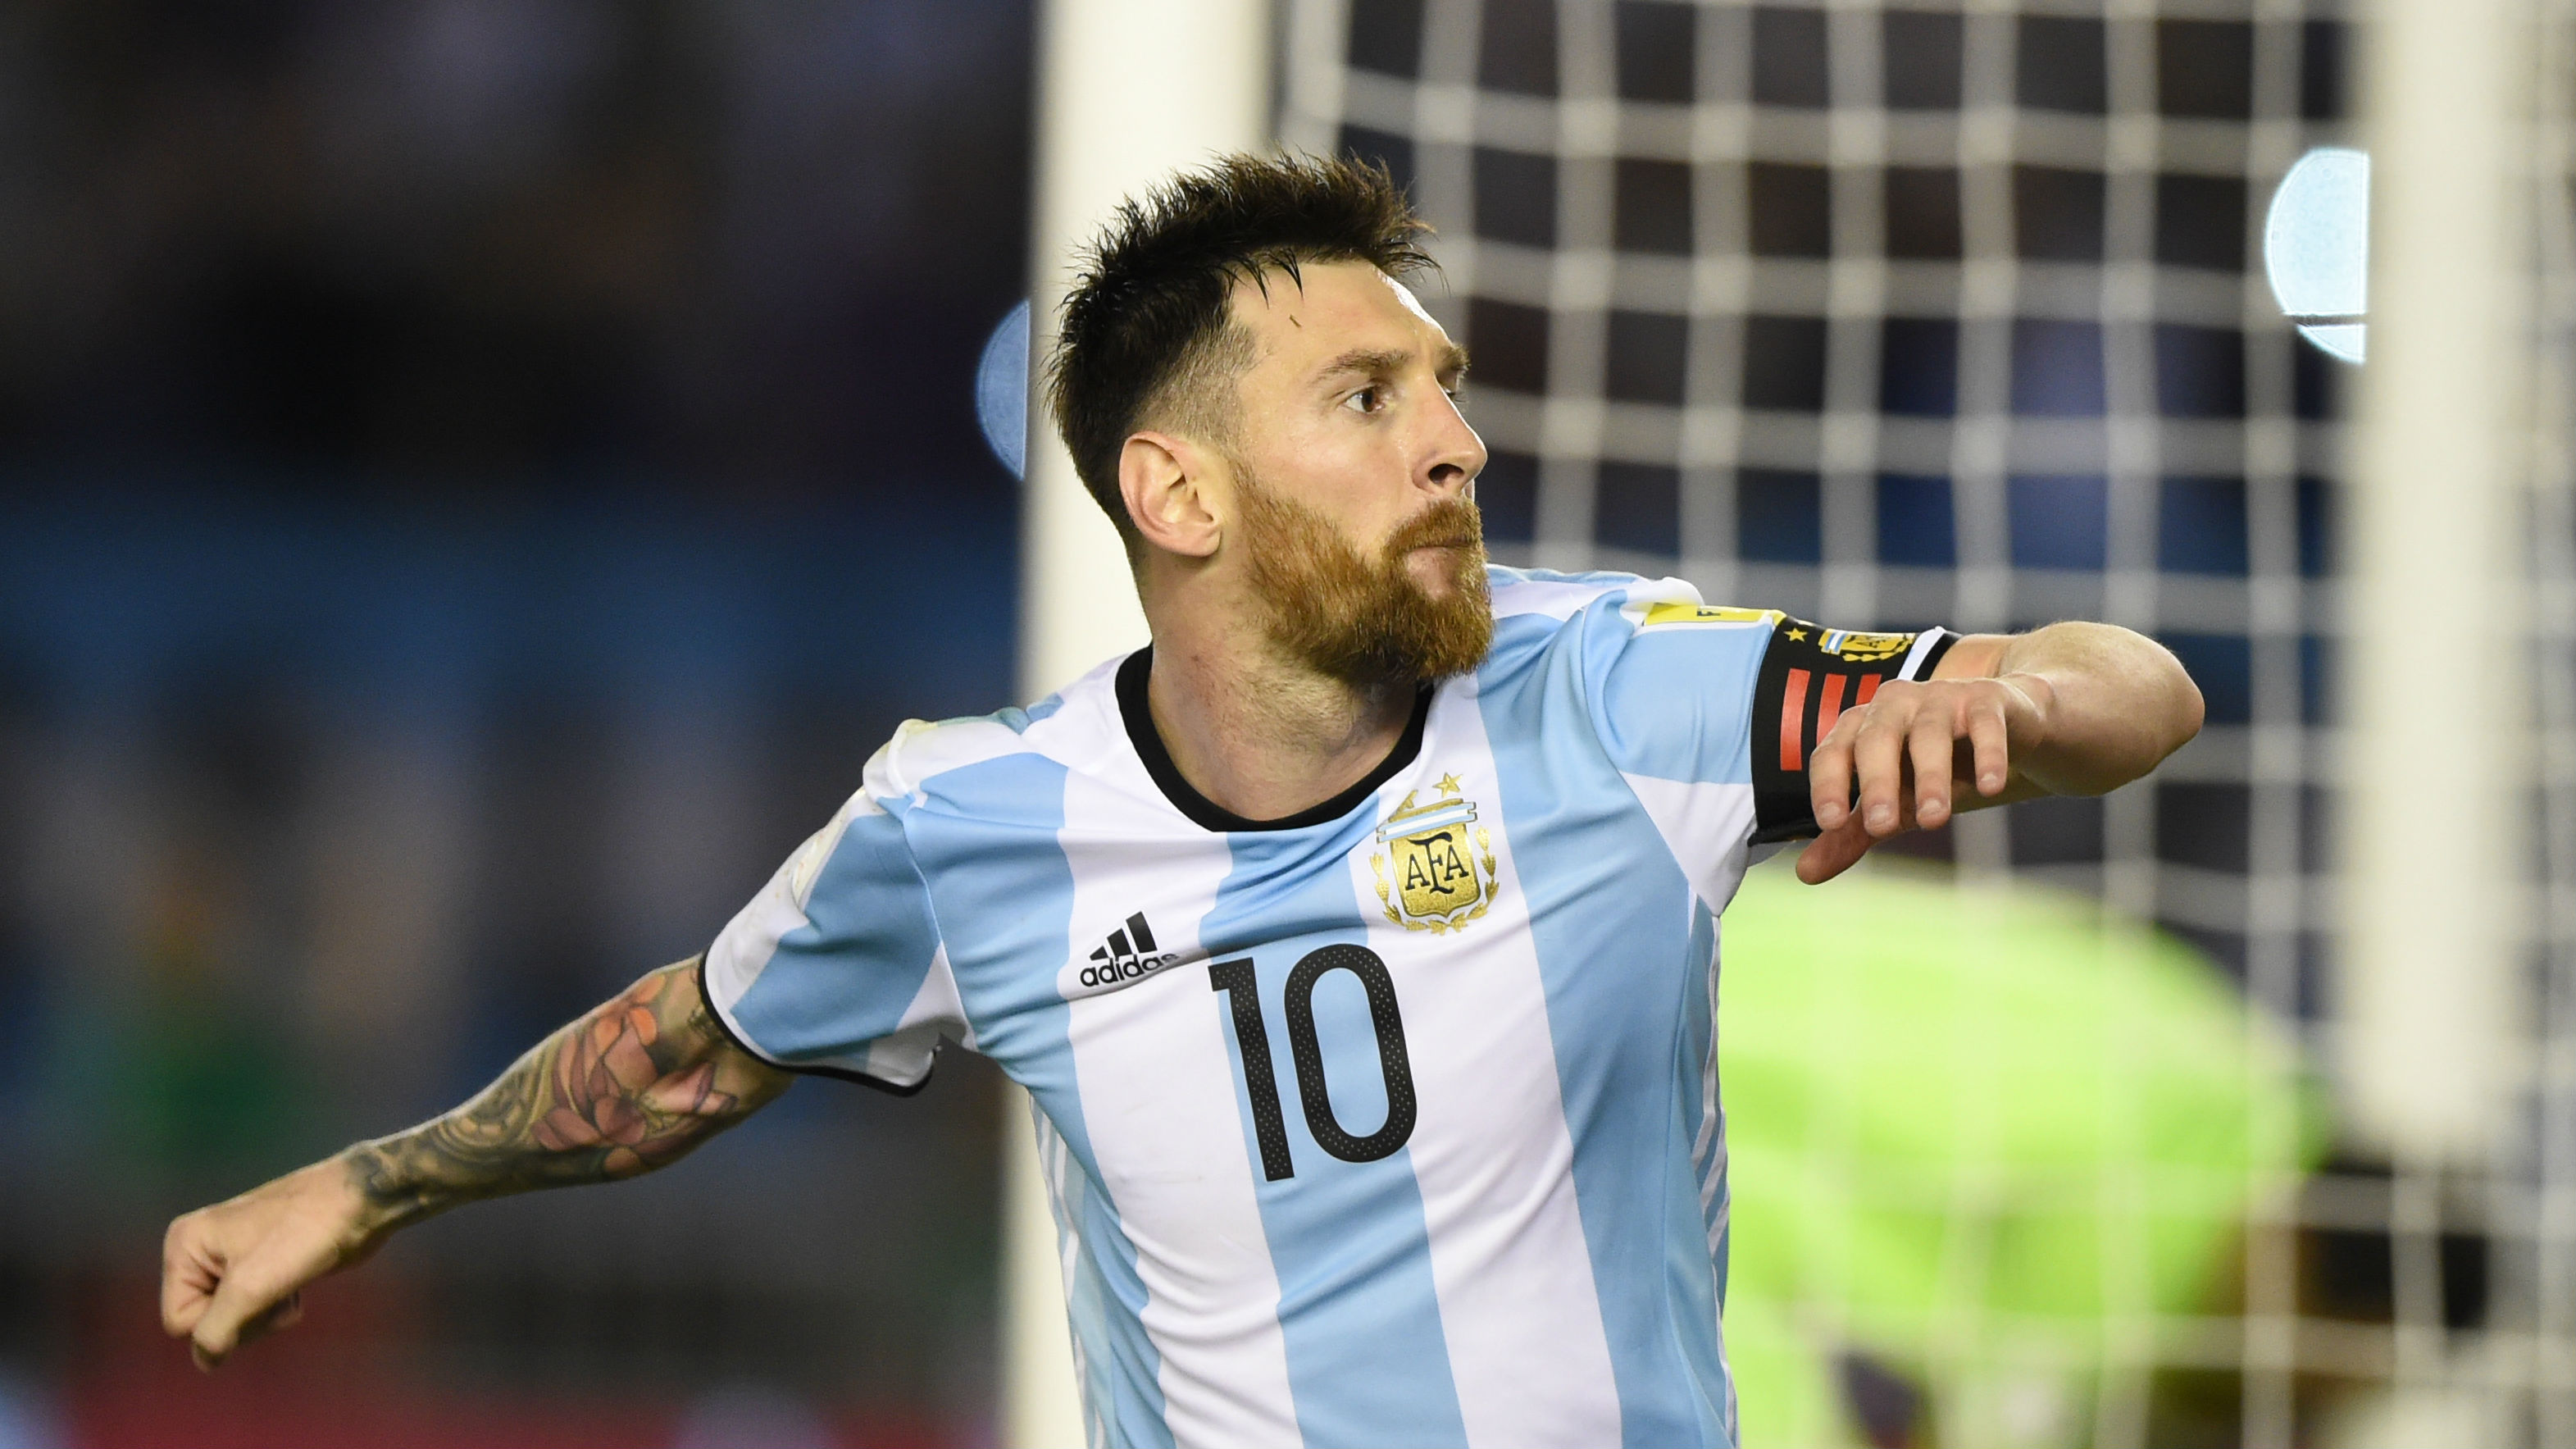 In a friendly match held this morning against Venezuela, the Argentine icon Lionel Messi suffered a groin injury. Following the incident, Messi had to withdraw from the Tuesday match scheduled against Morocco.